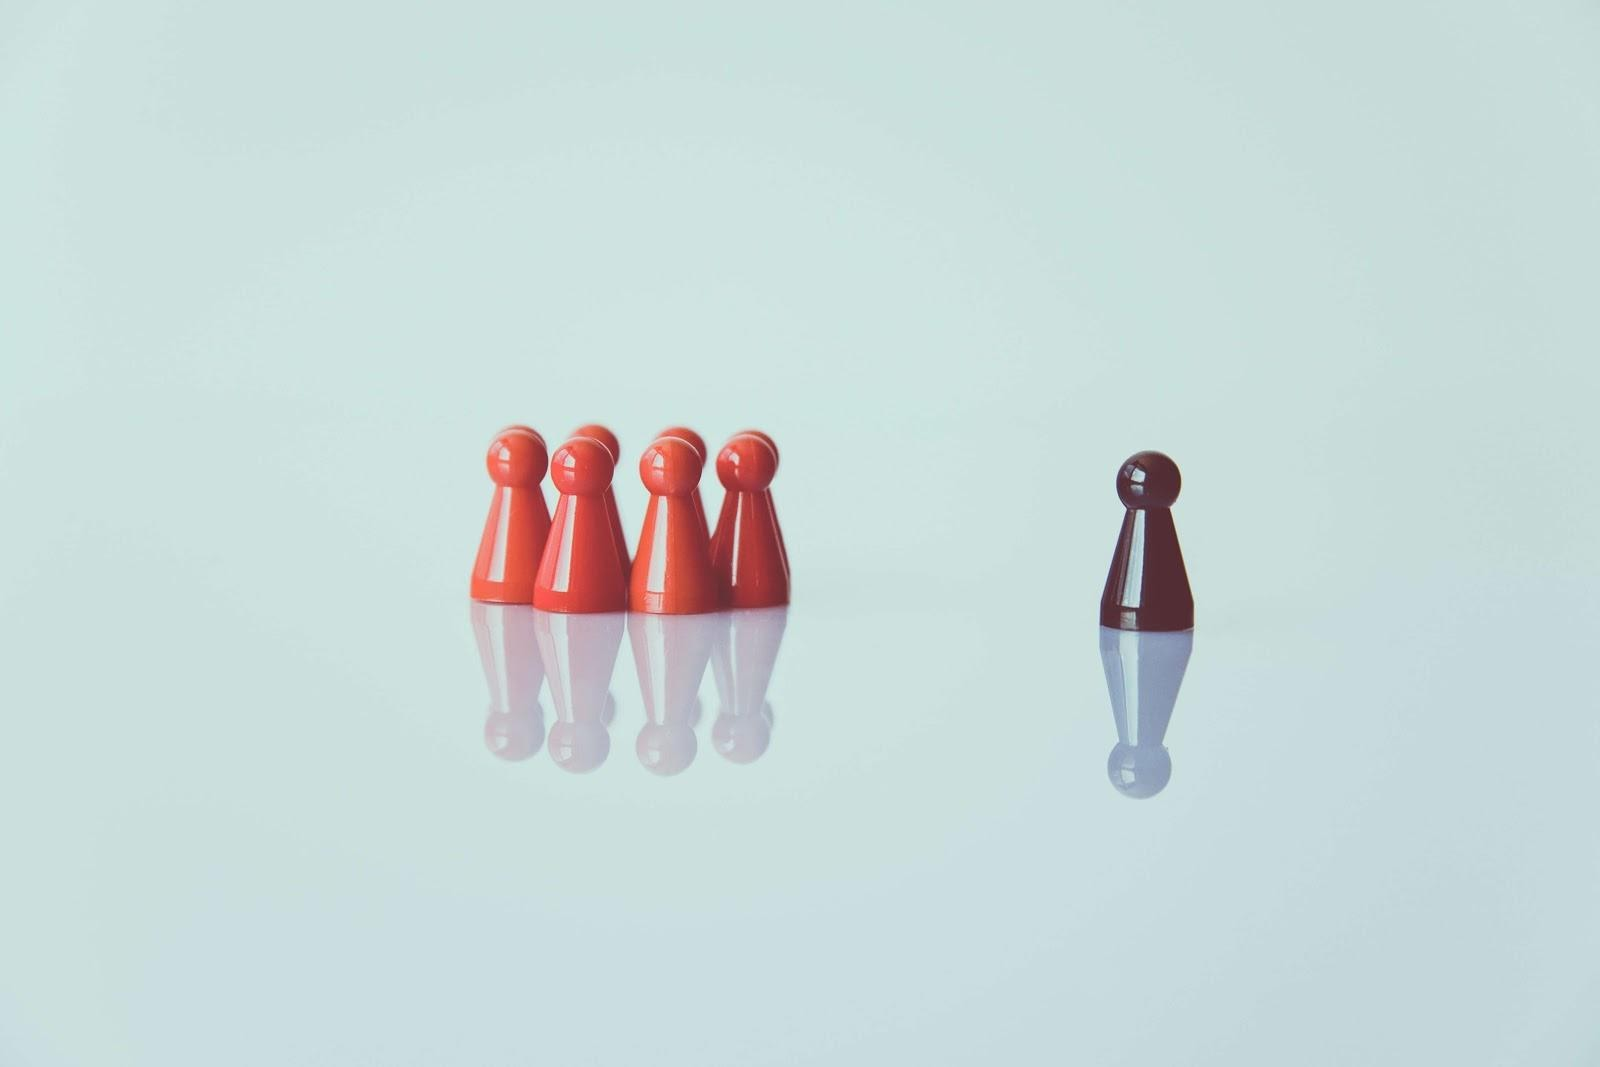 Game pieces displaying laissez faire leadership with one piece set apart